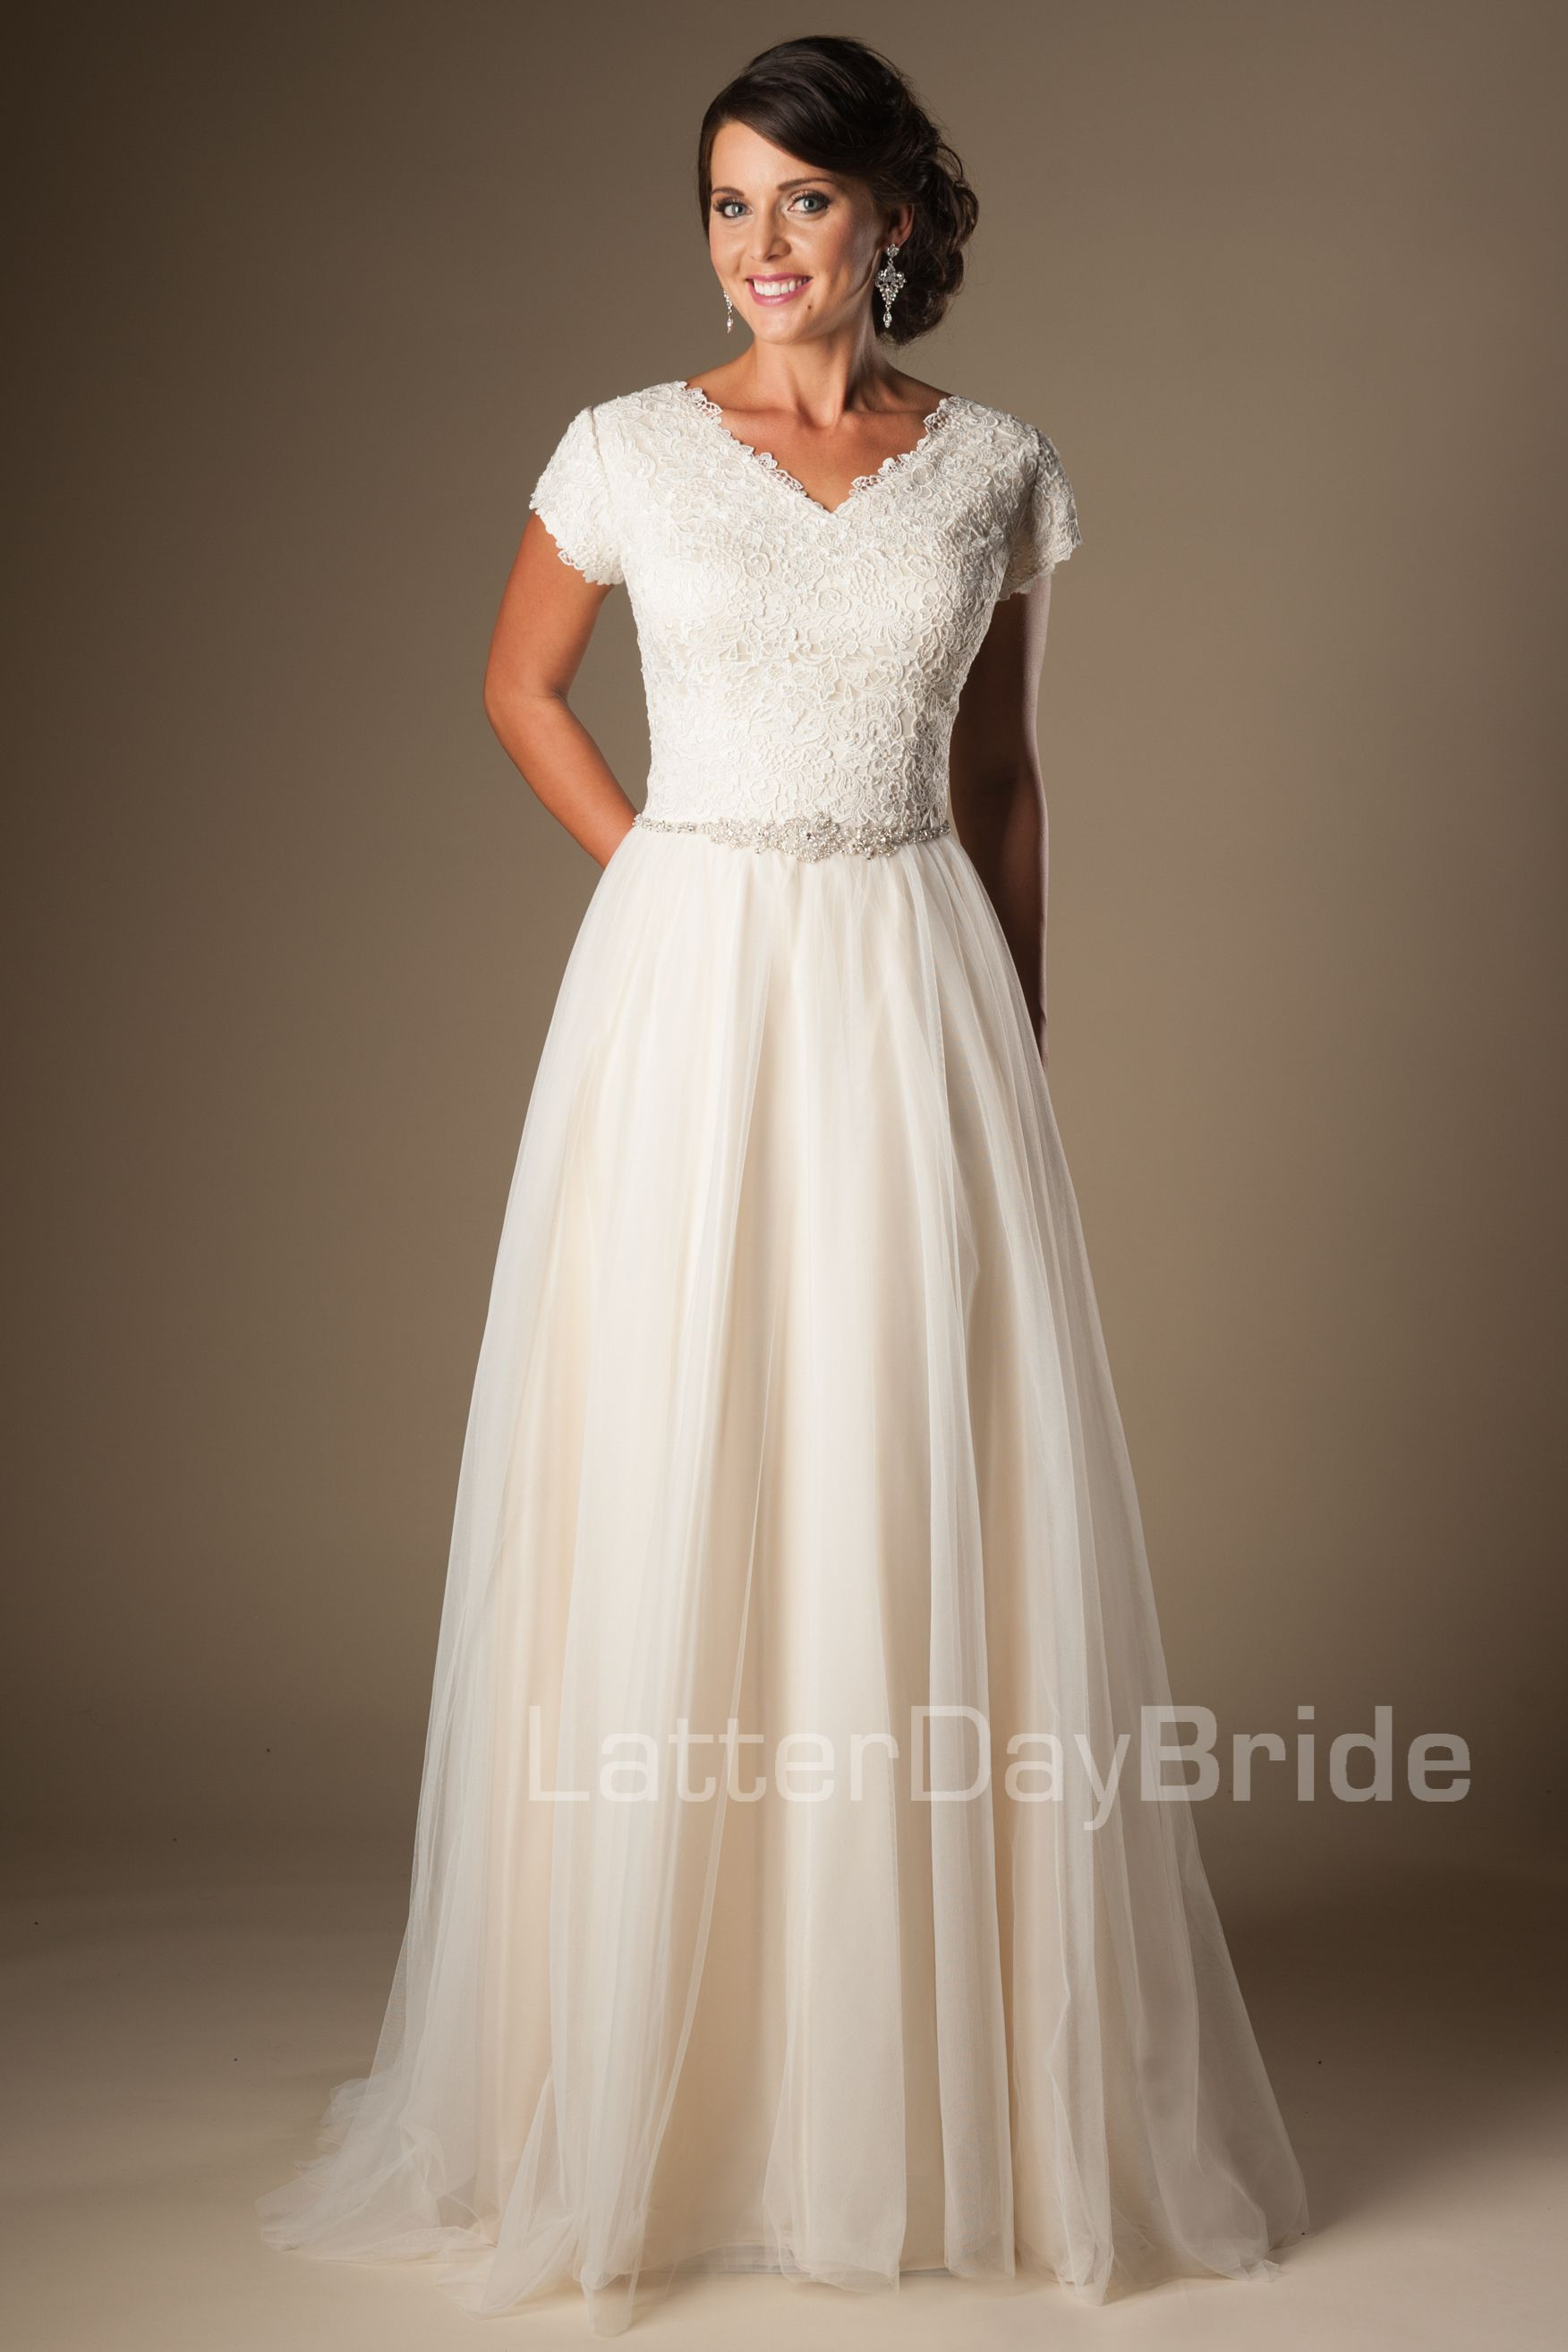 Love This Modest Dress Delicate Belt Light Lace Flowing Skirt And Petal Sleeves